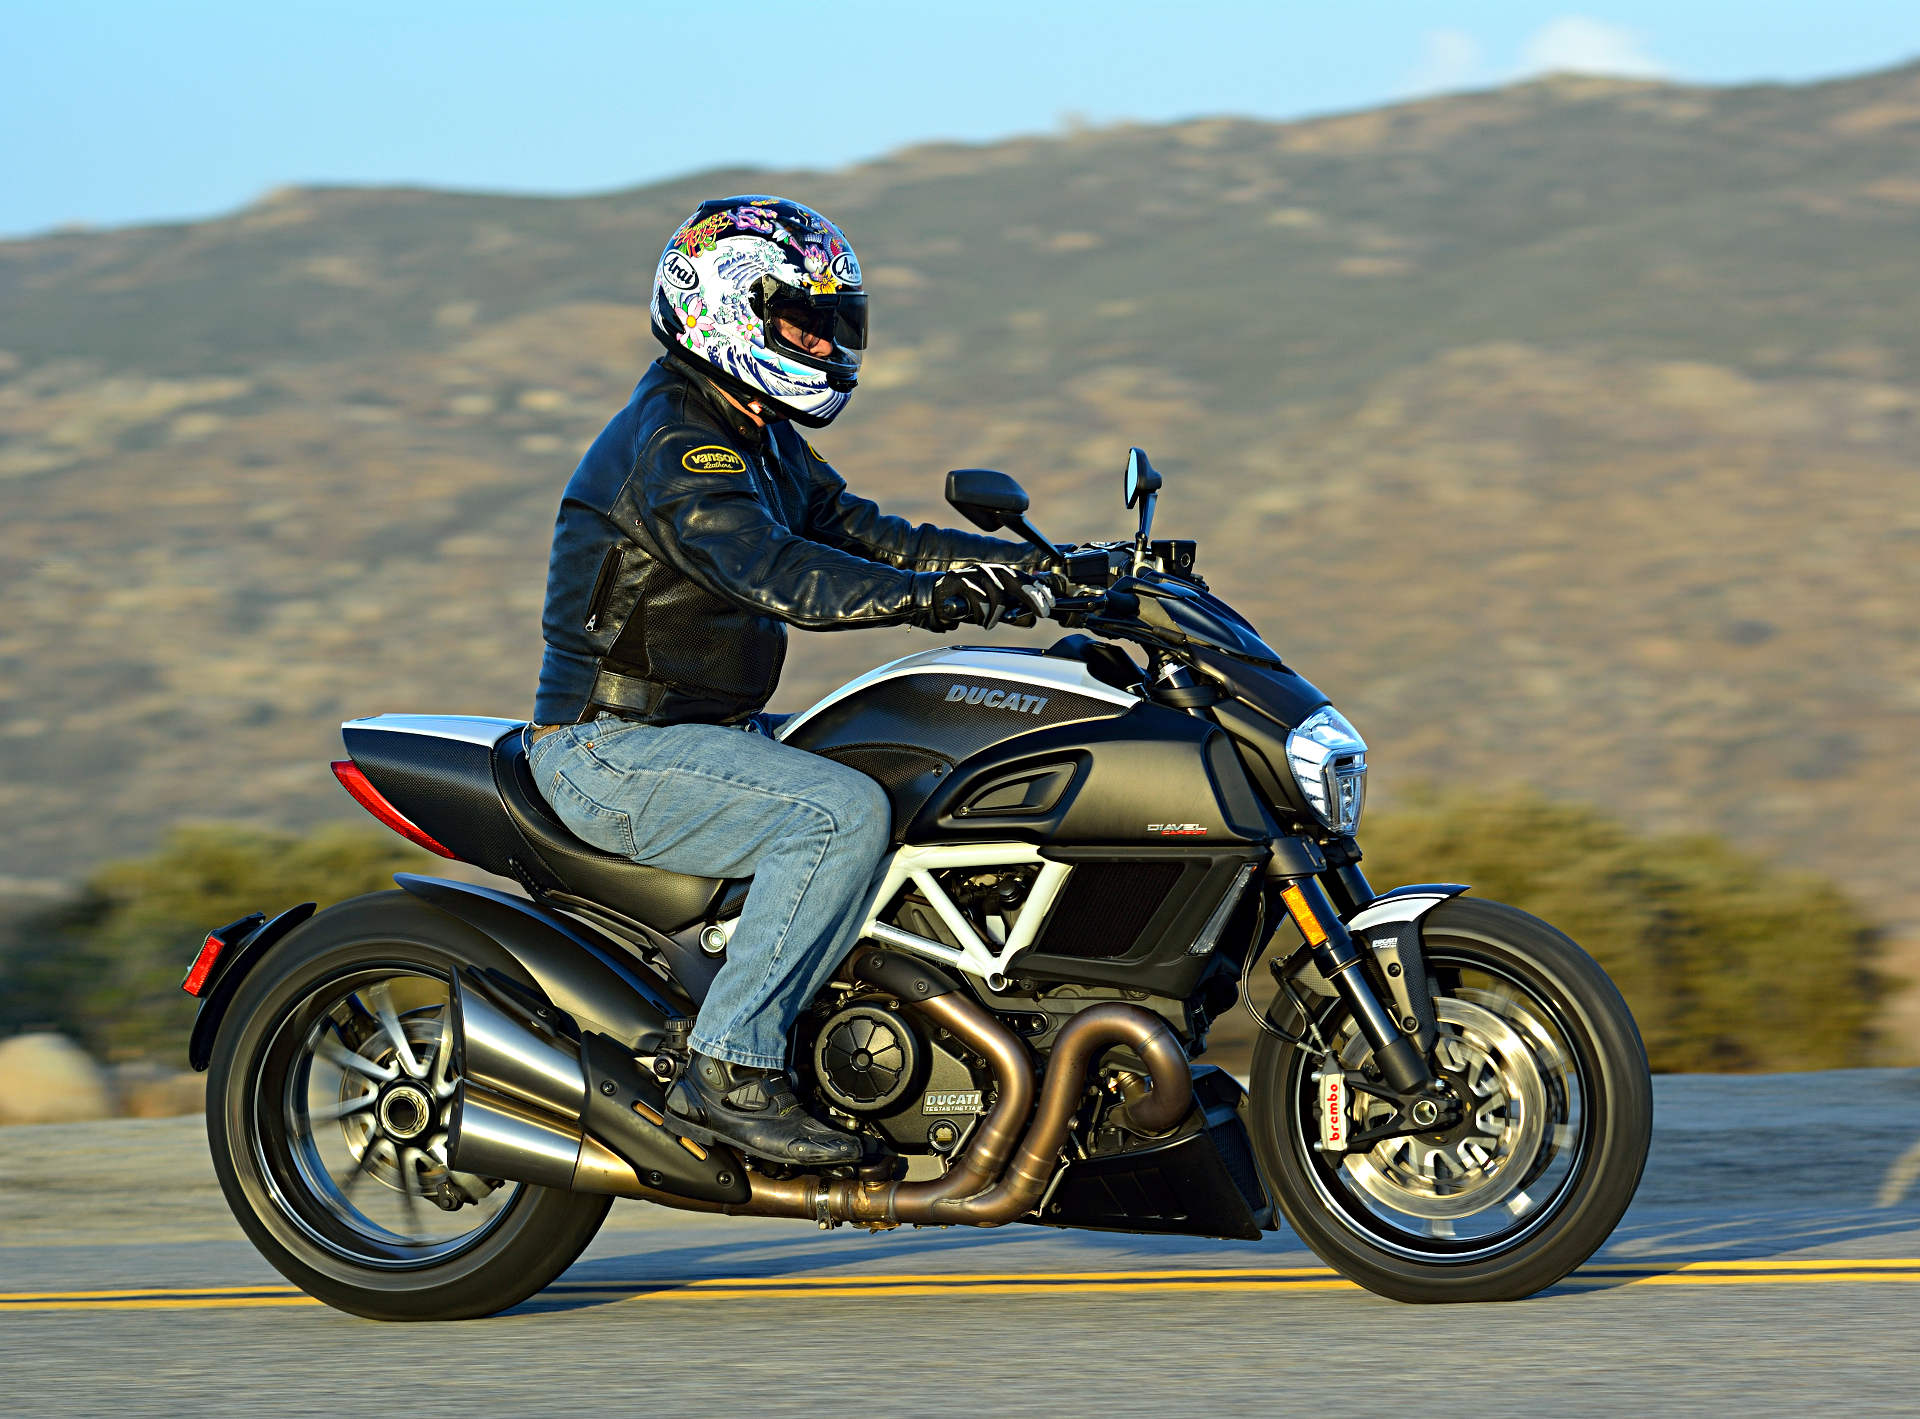 2015 Ducati Diavel Carbon Md Ride Review Motorcycledaily Com